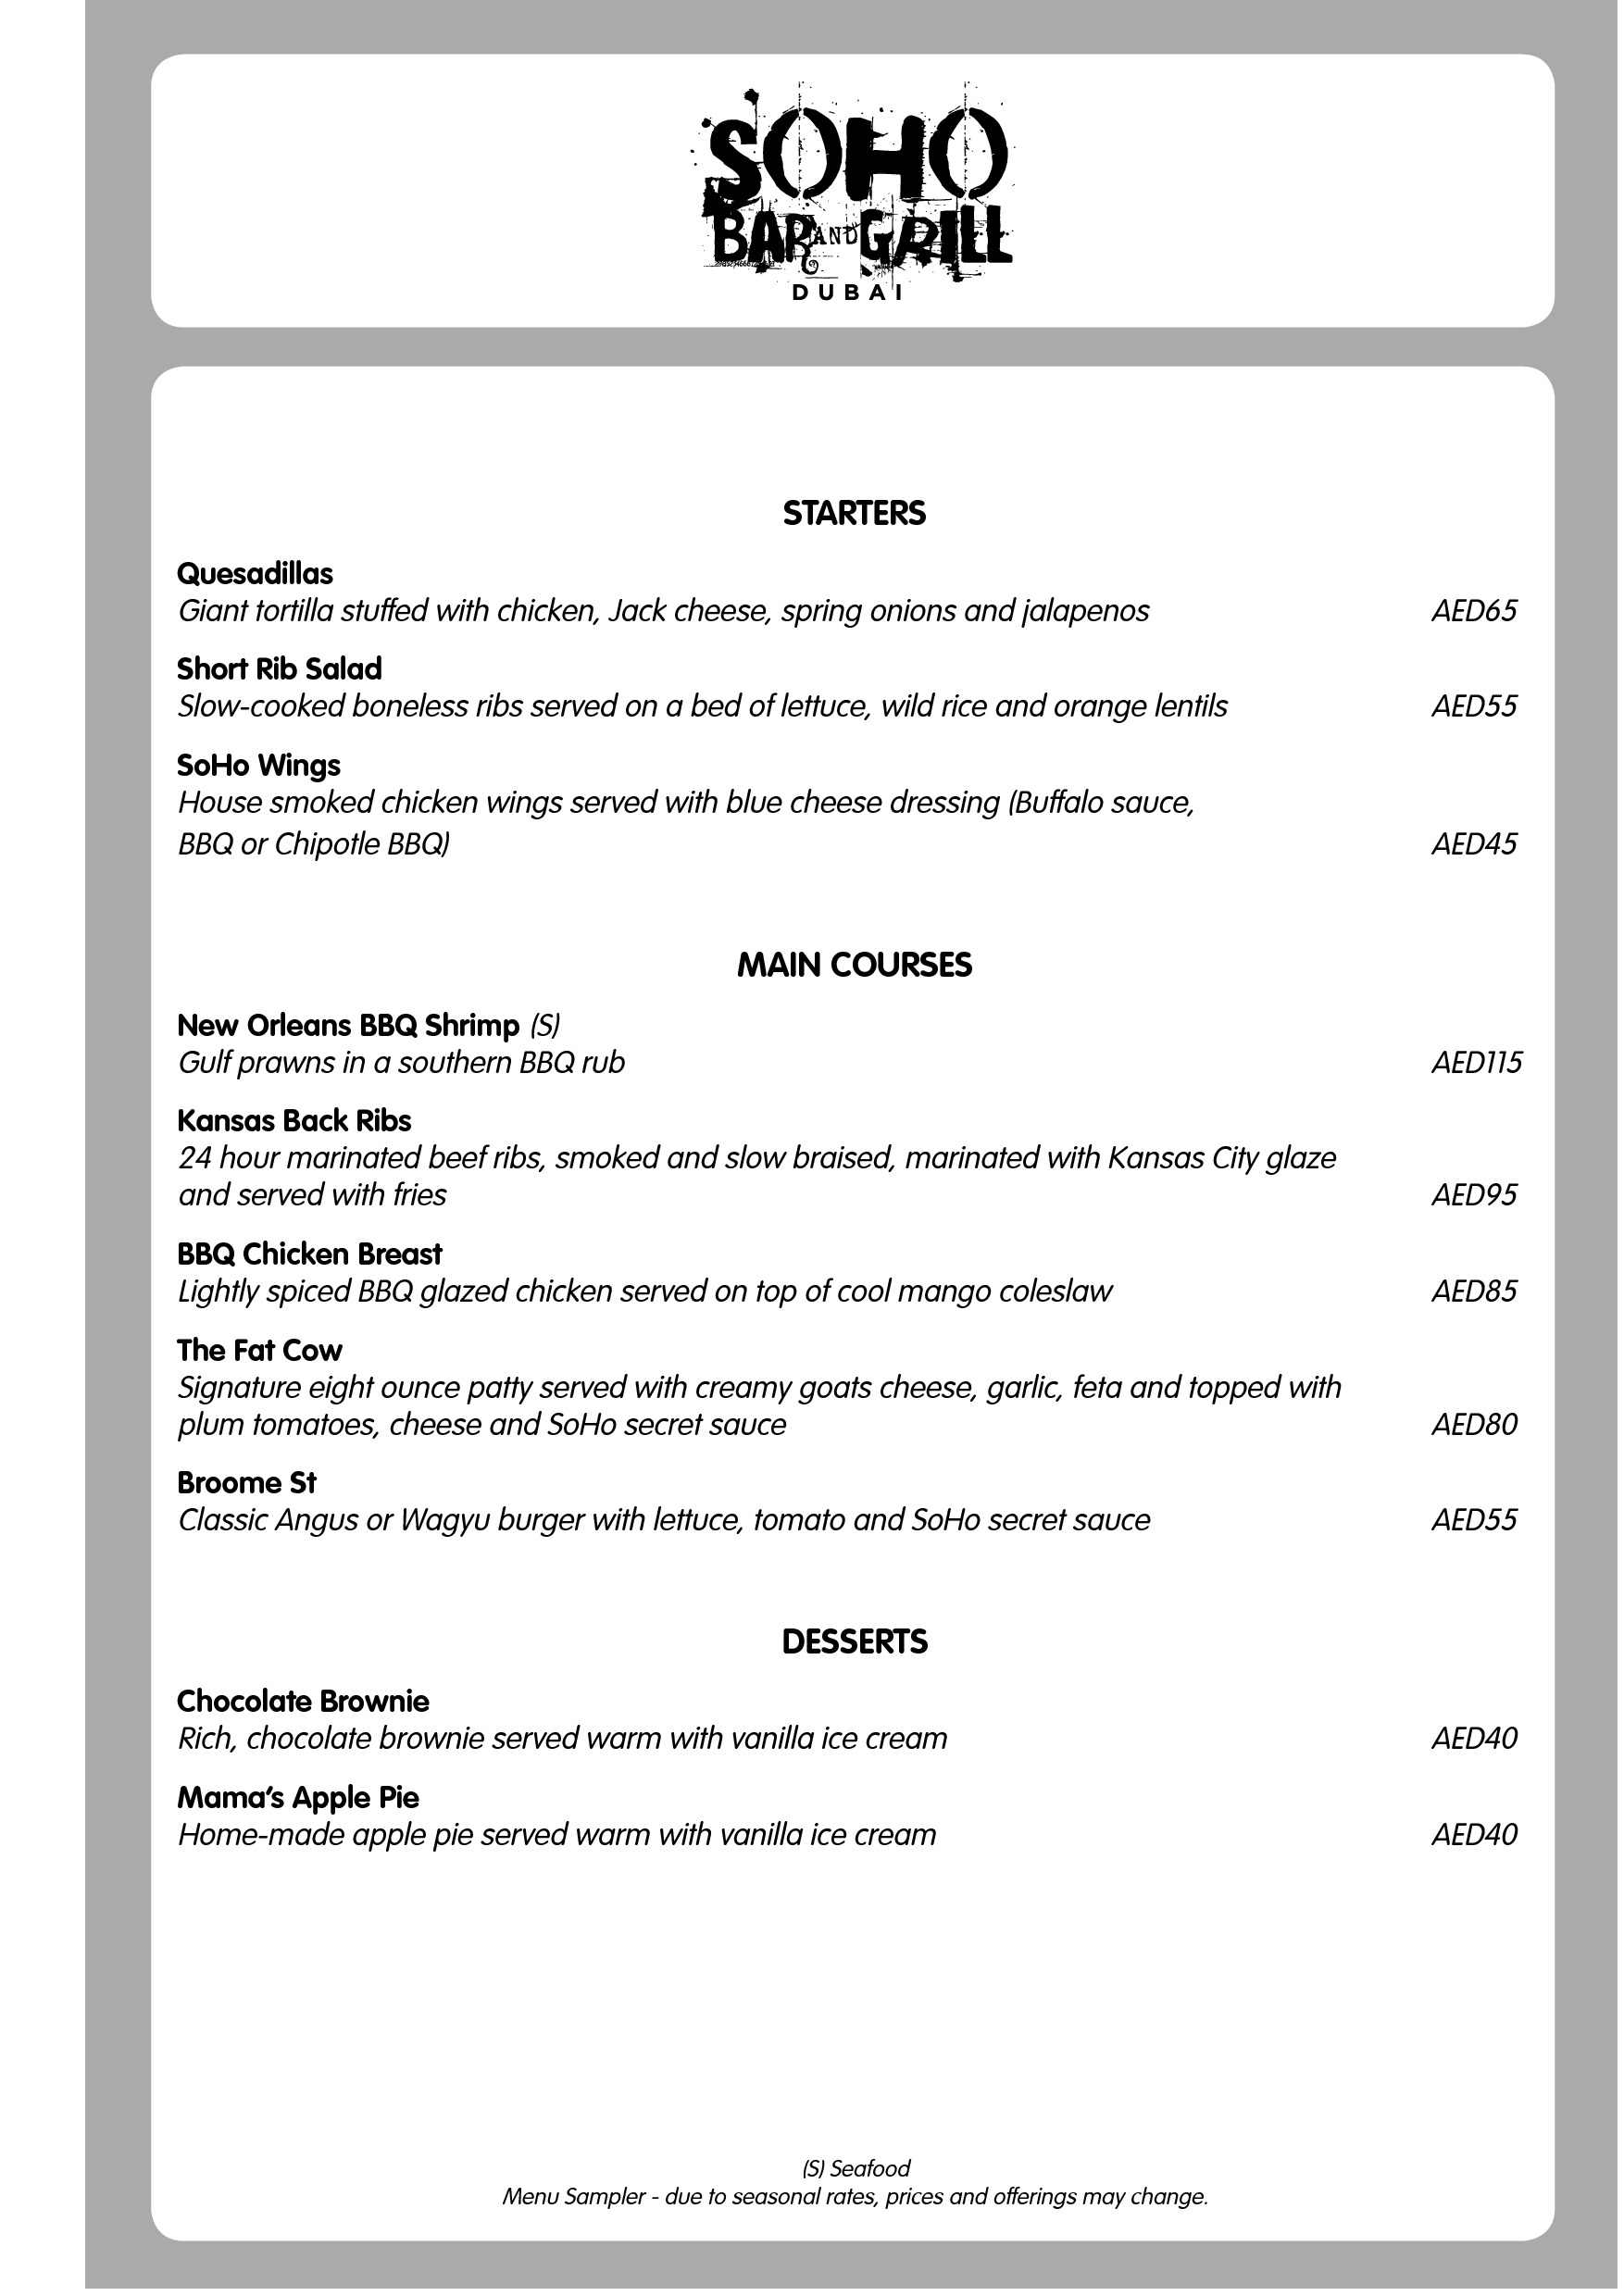 SoHo Bar & Grill Menu